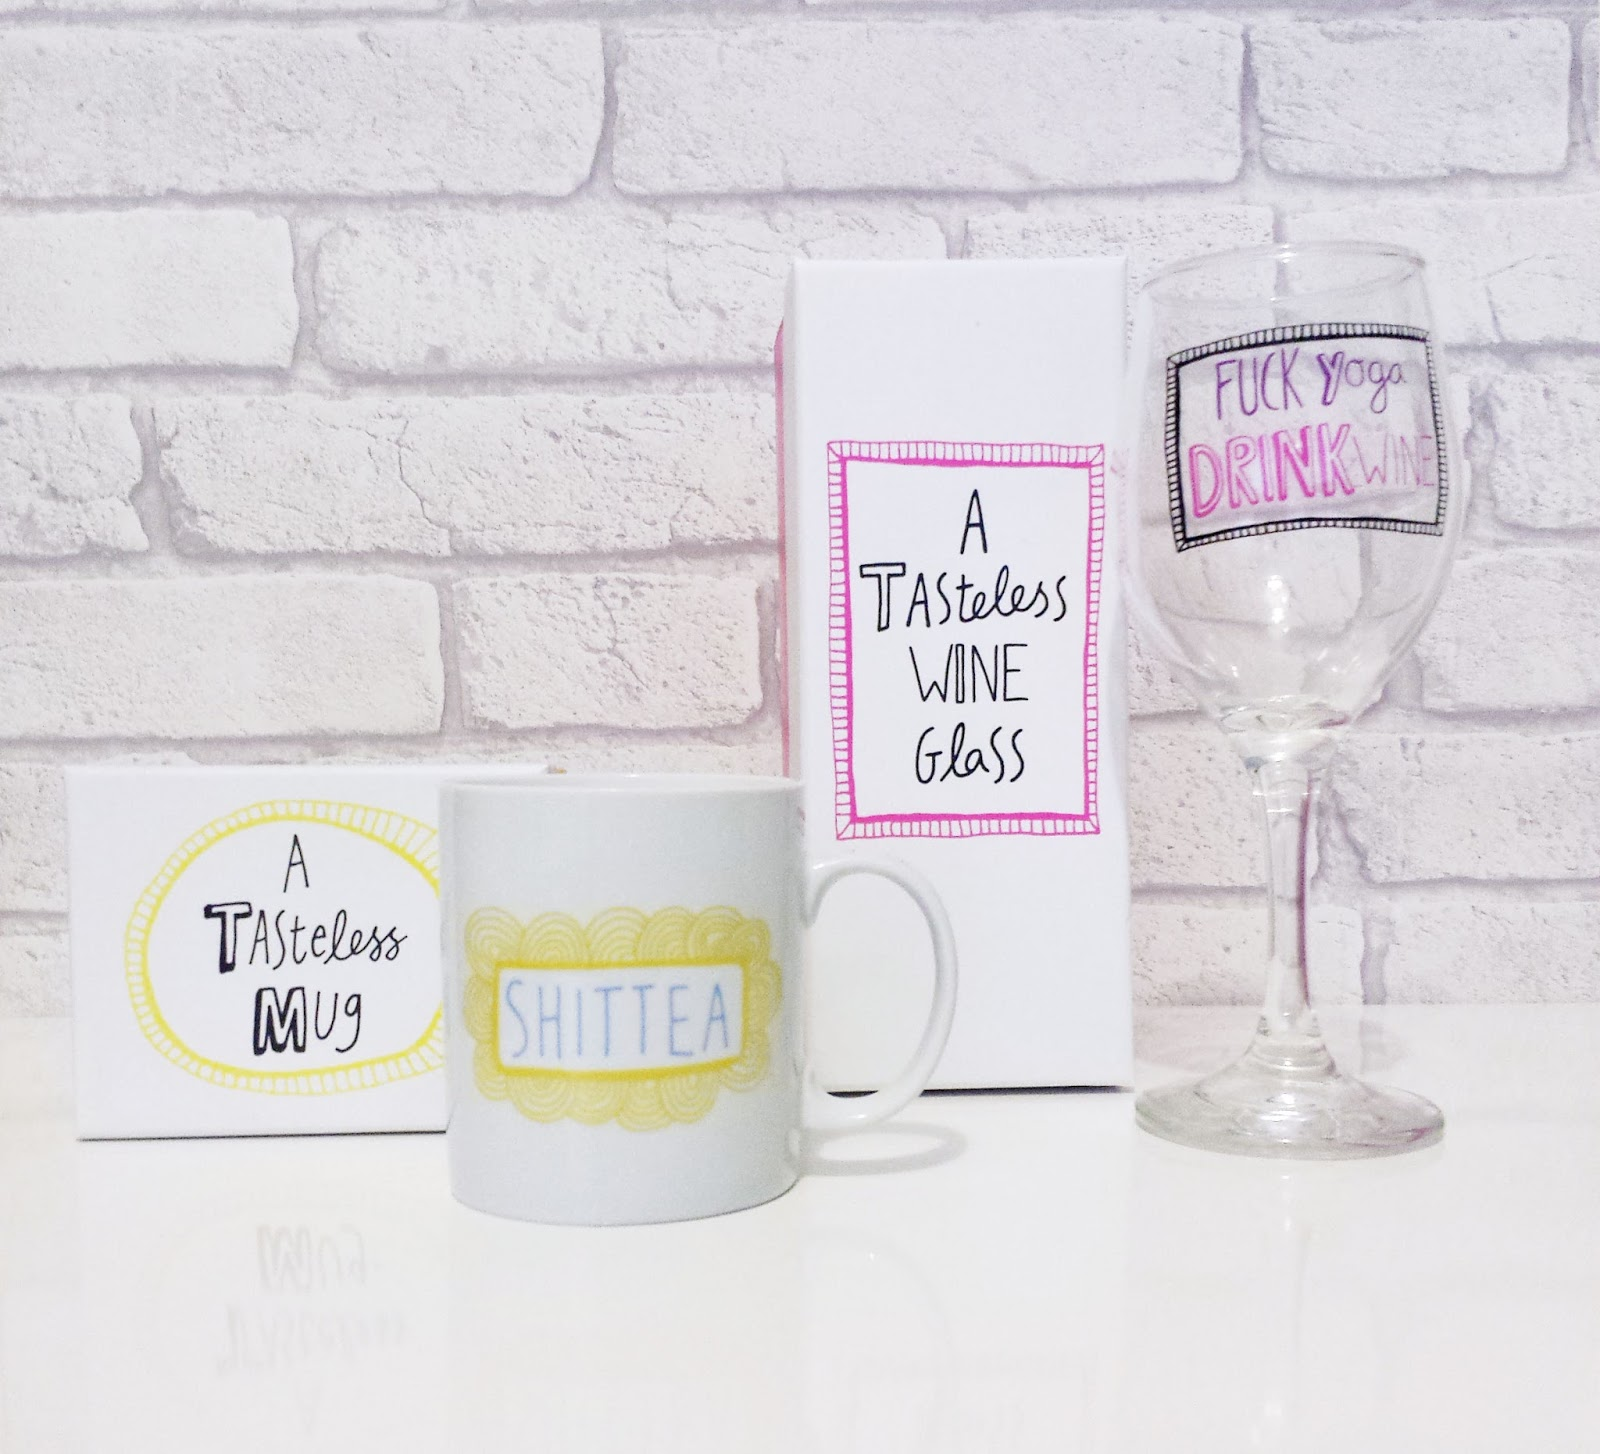 Tasteless Mug & Tasteless Wine Glass